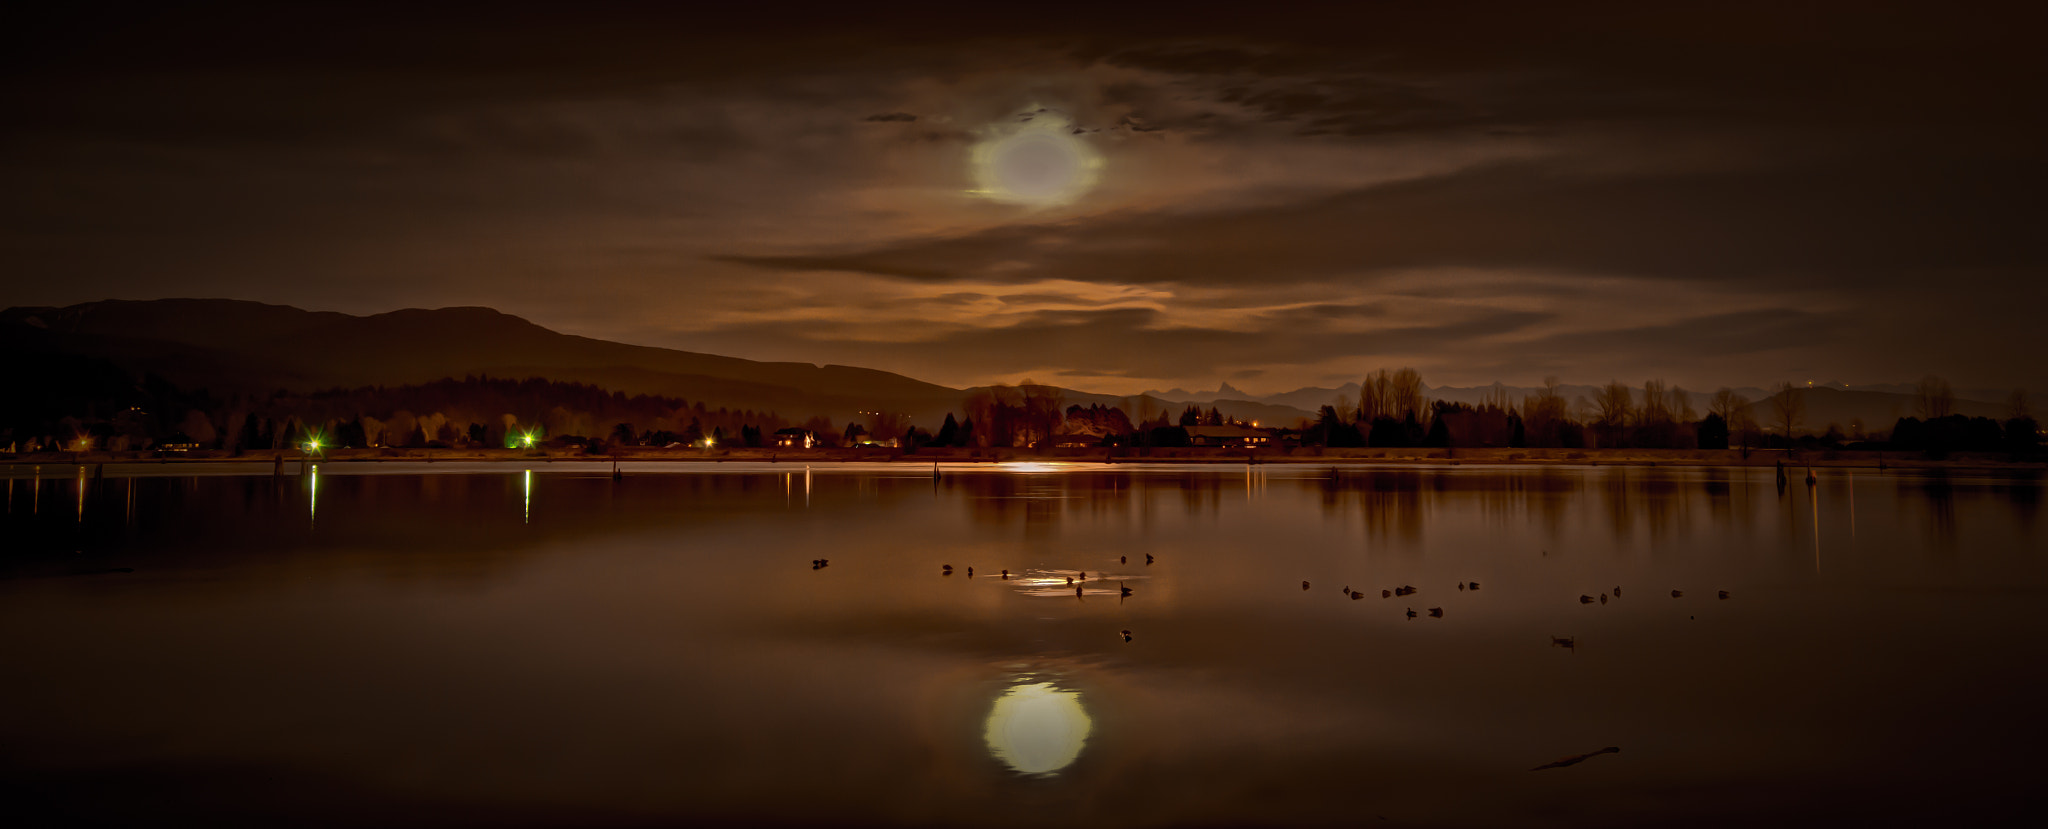 Photograph moon rise by Jerry Janusz on 500px